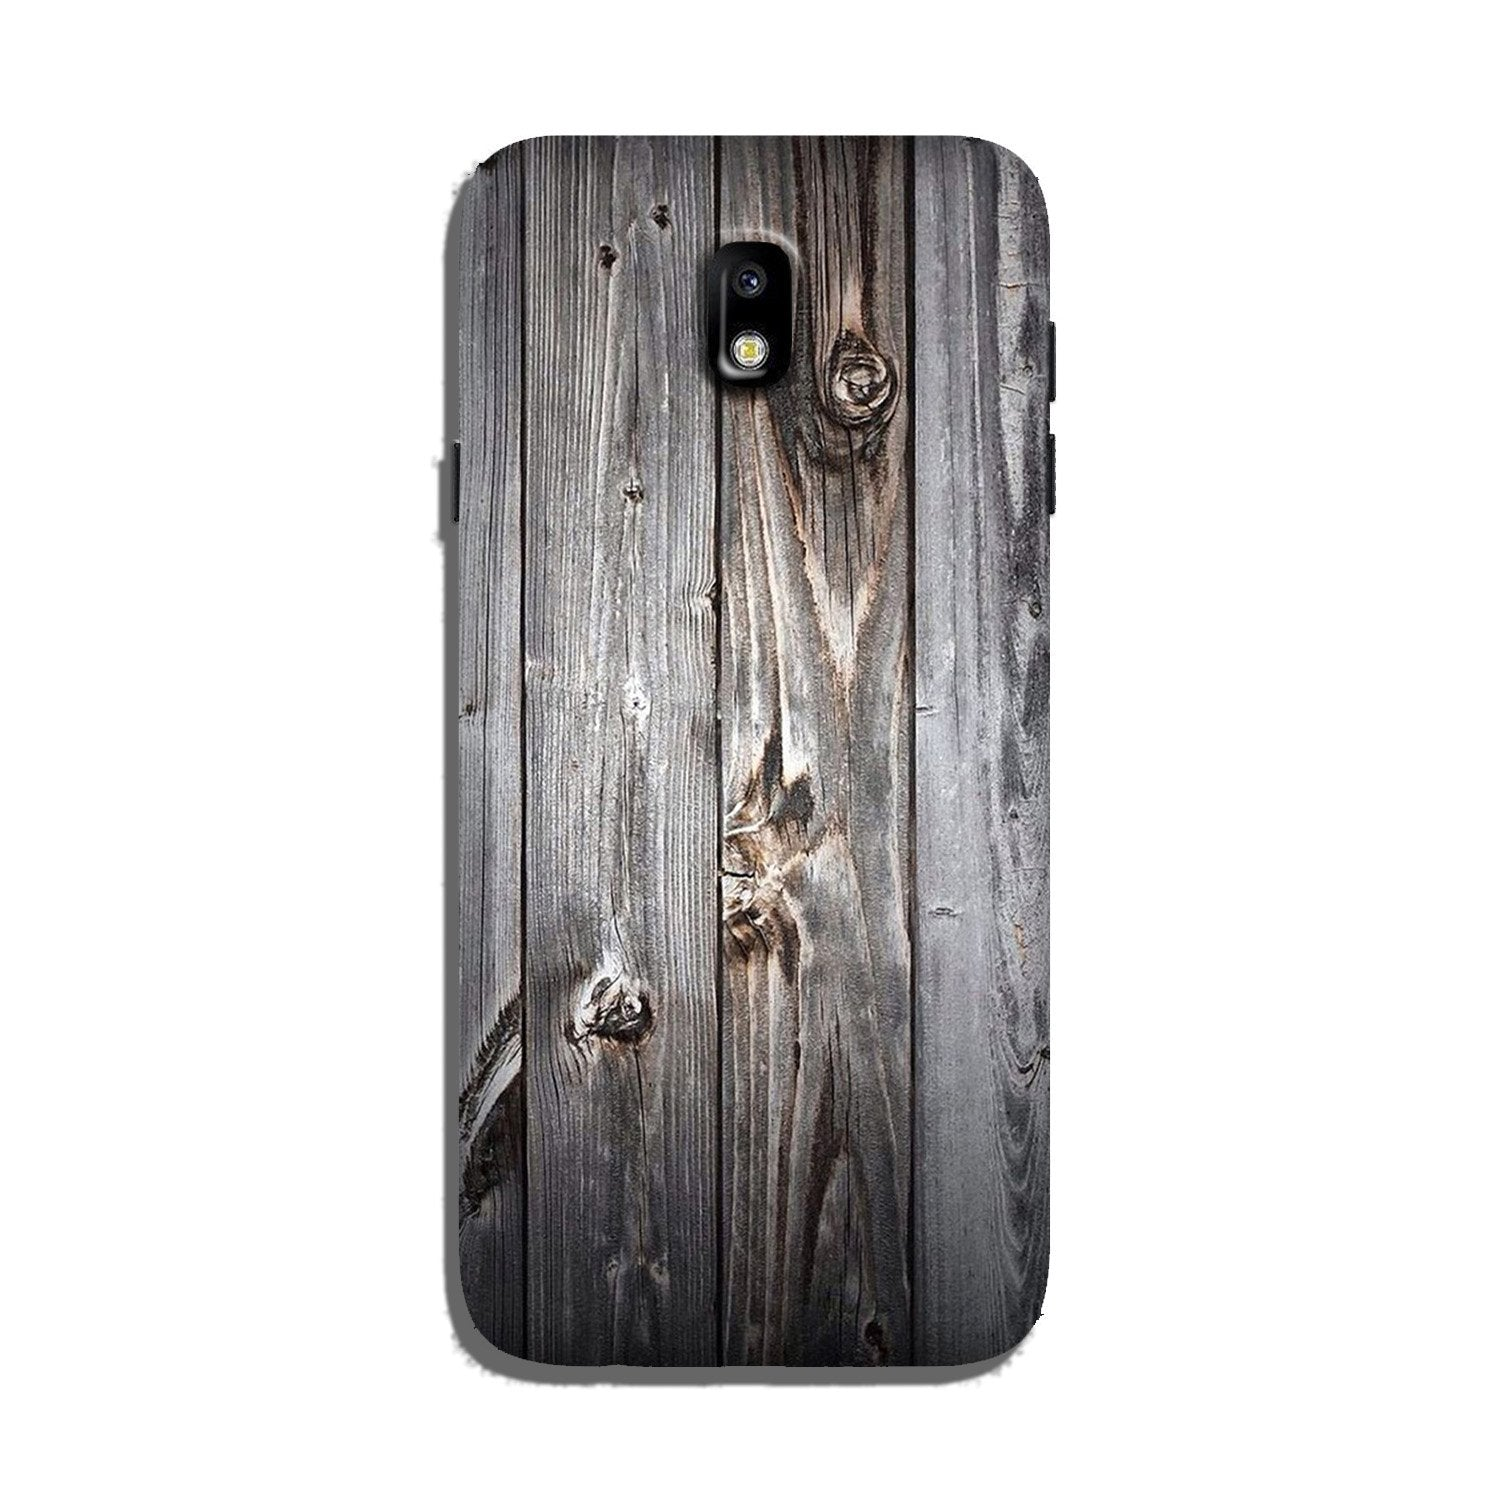 Wooden Look Case for Galaxy J7 Pro  (Design - 114)